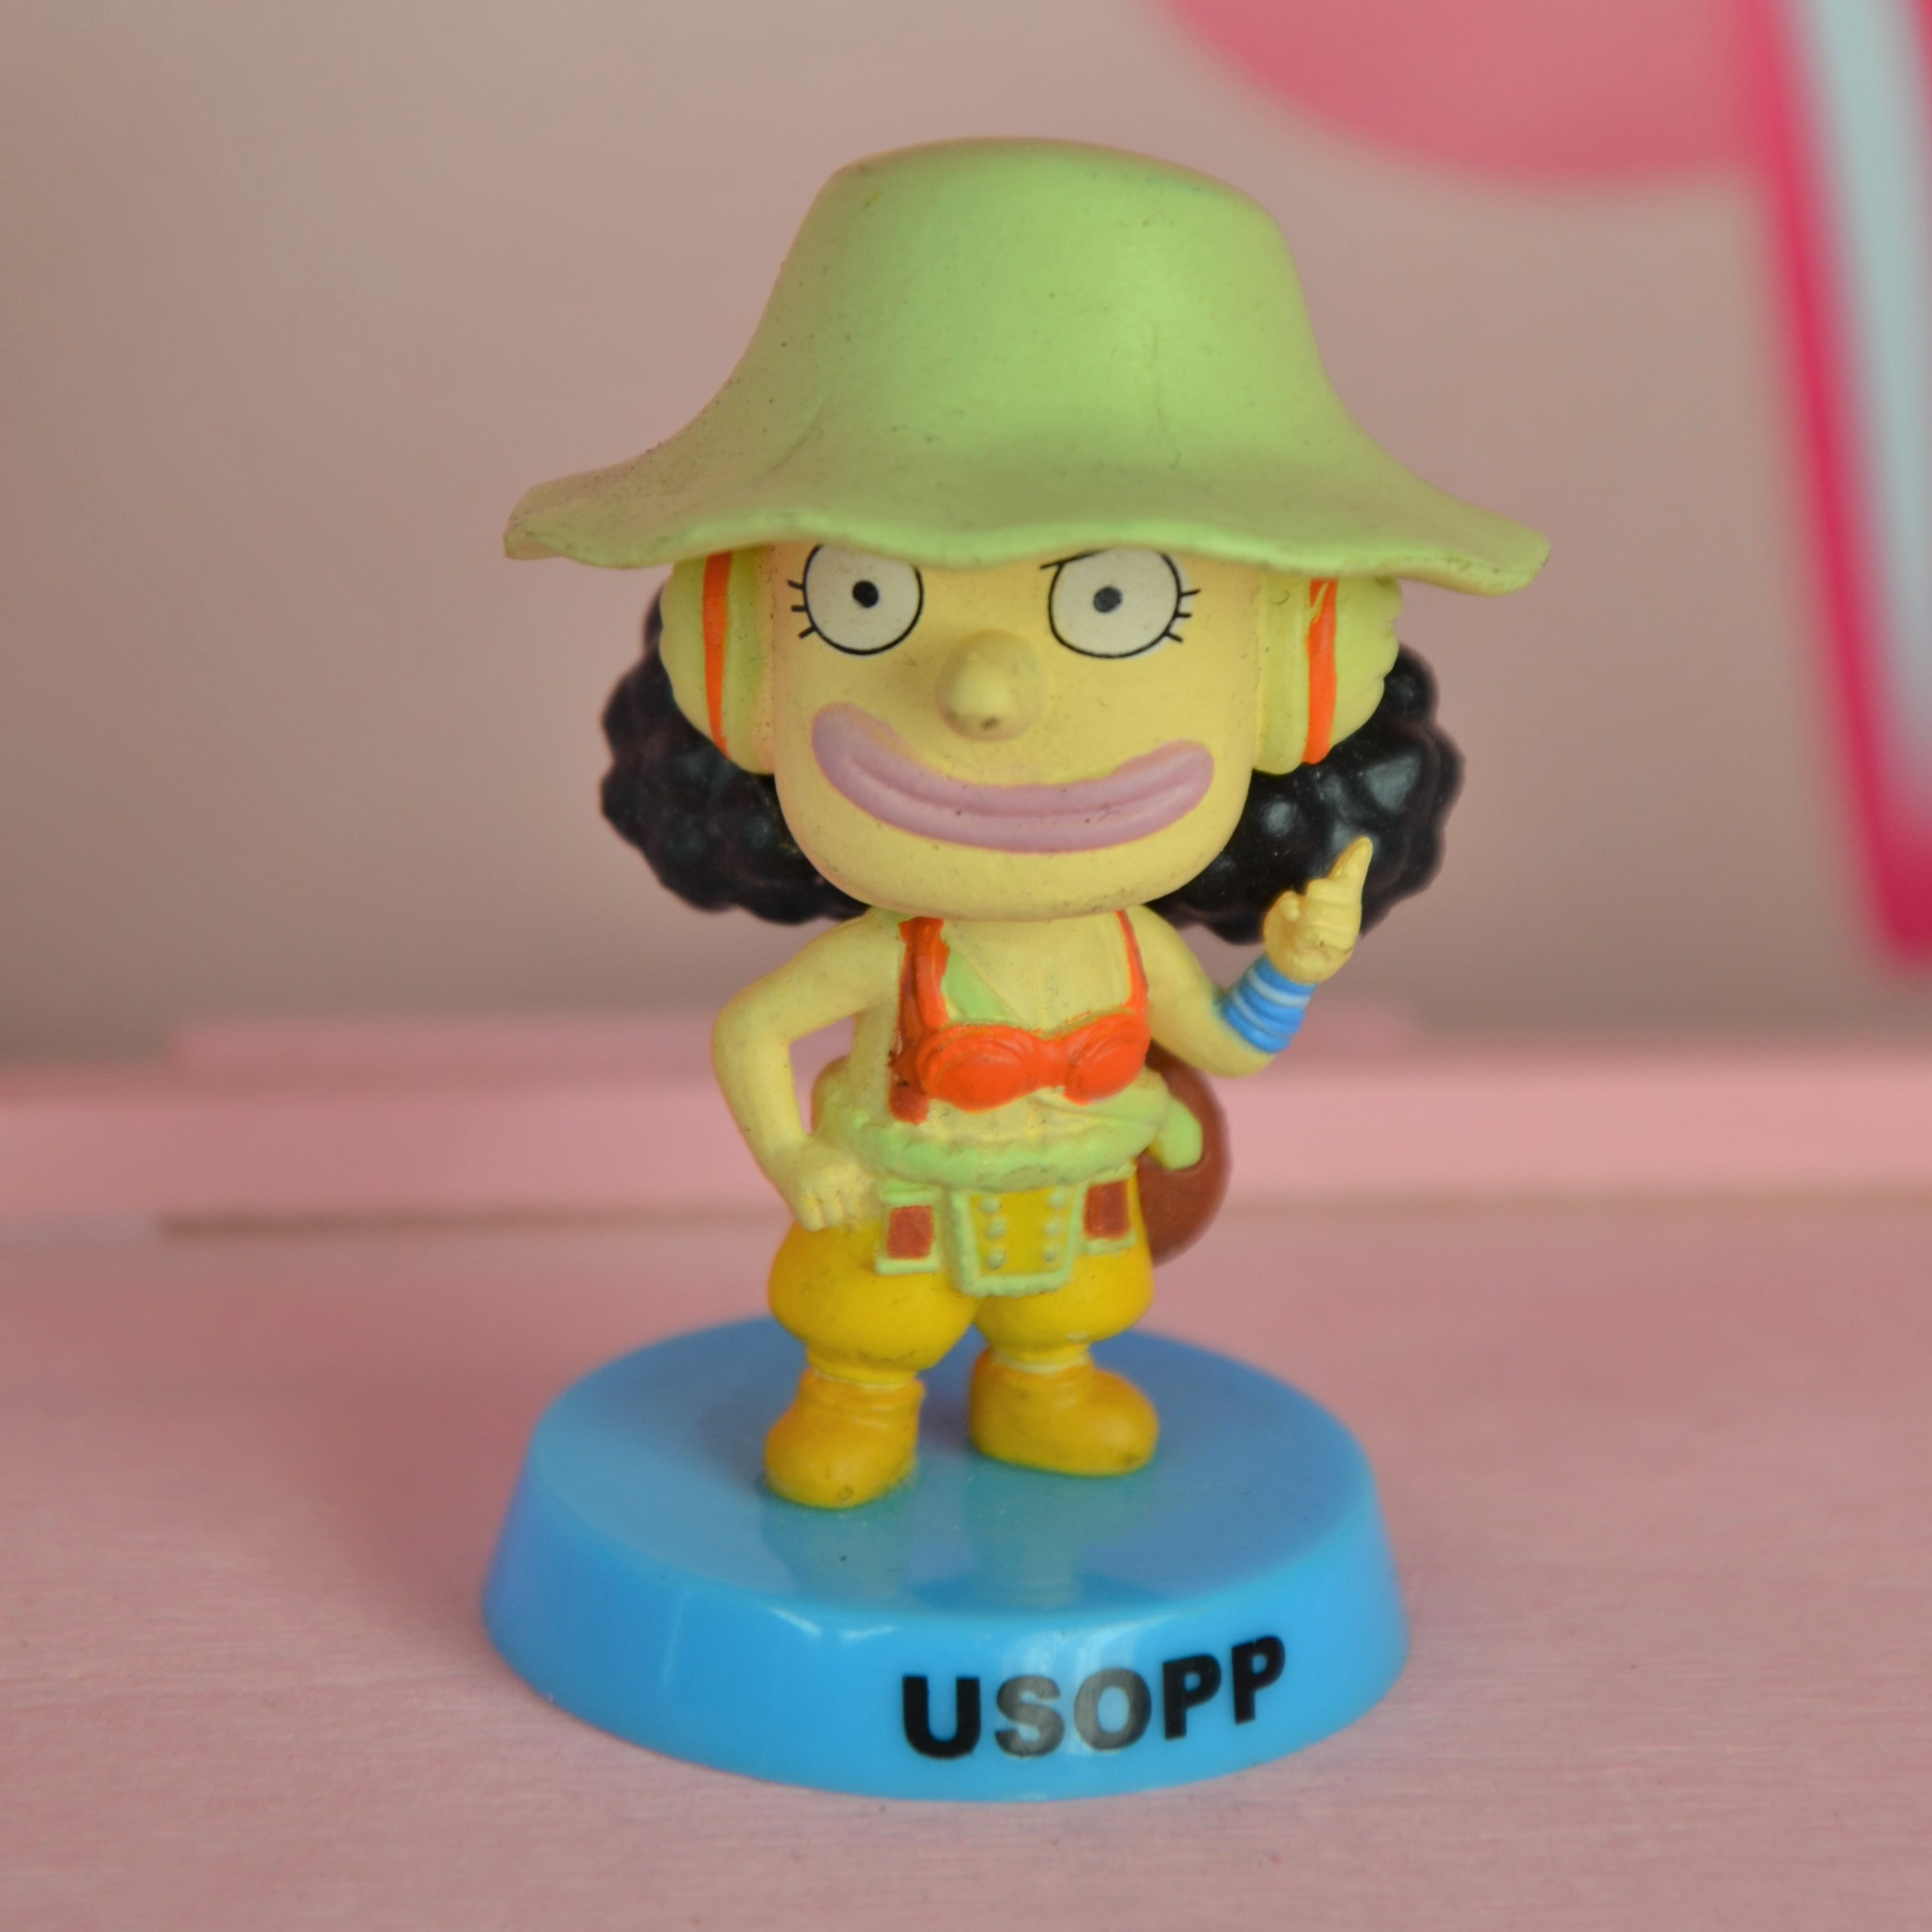 One Piece Usopp Bobble Head Figure - Moving Head